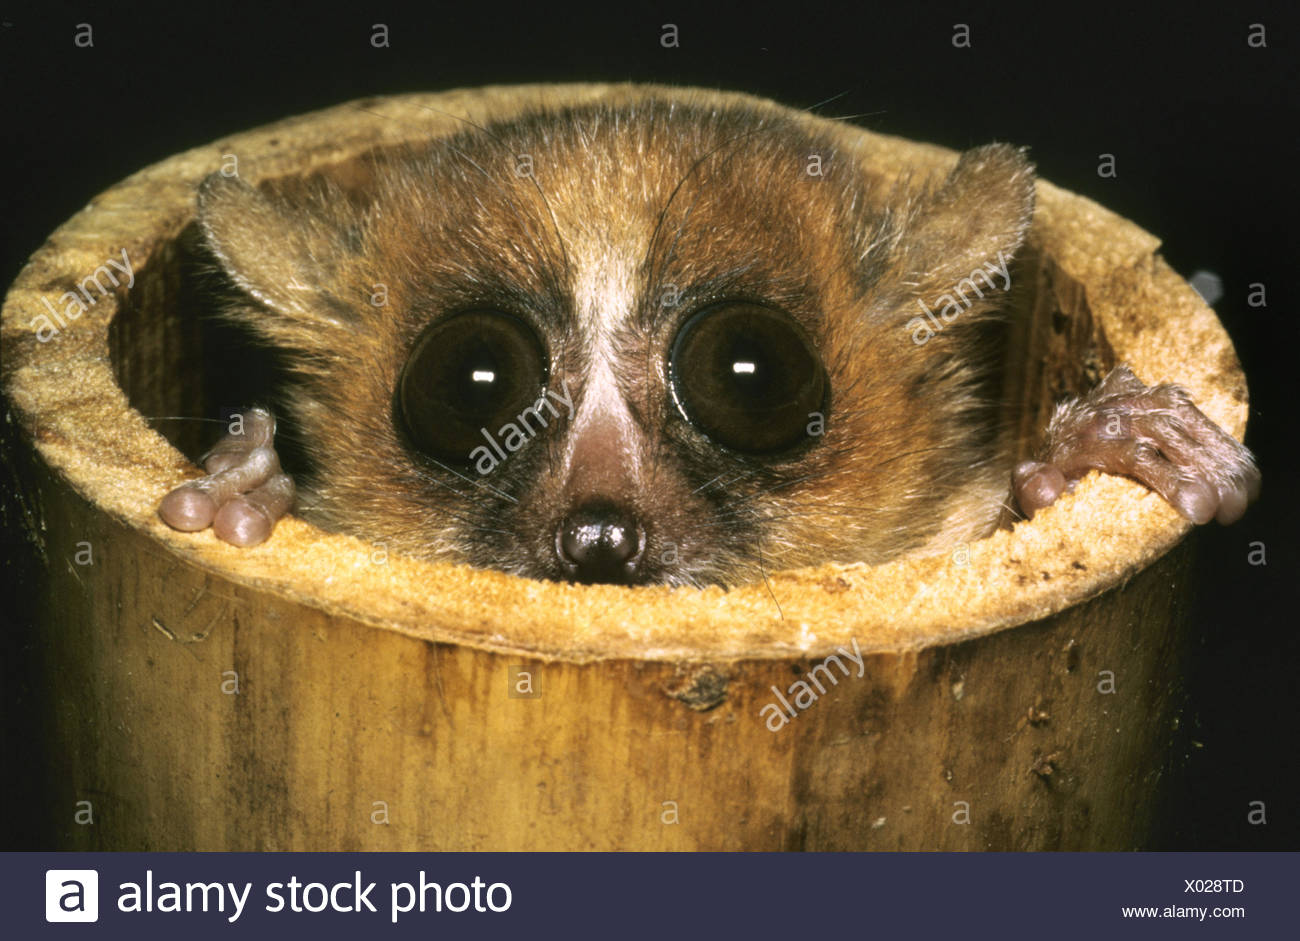 Red mouse-lemur, Brown mouse-lemur, Russet mouse-lemur (Microcebus rufus), looking out of a bamboo cane - Stock Image